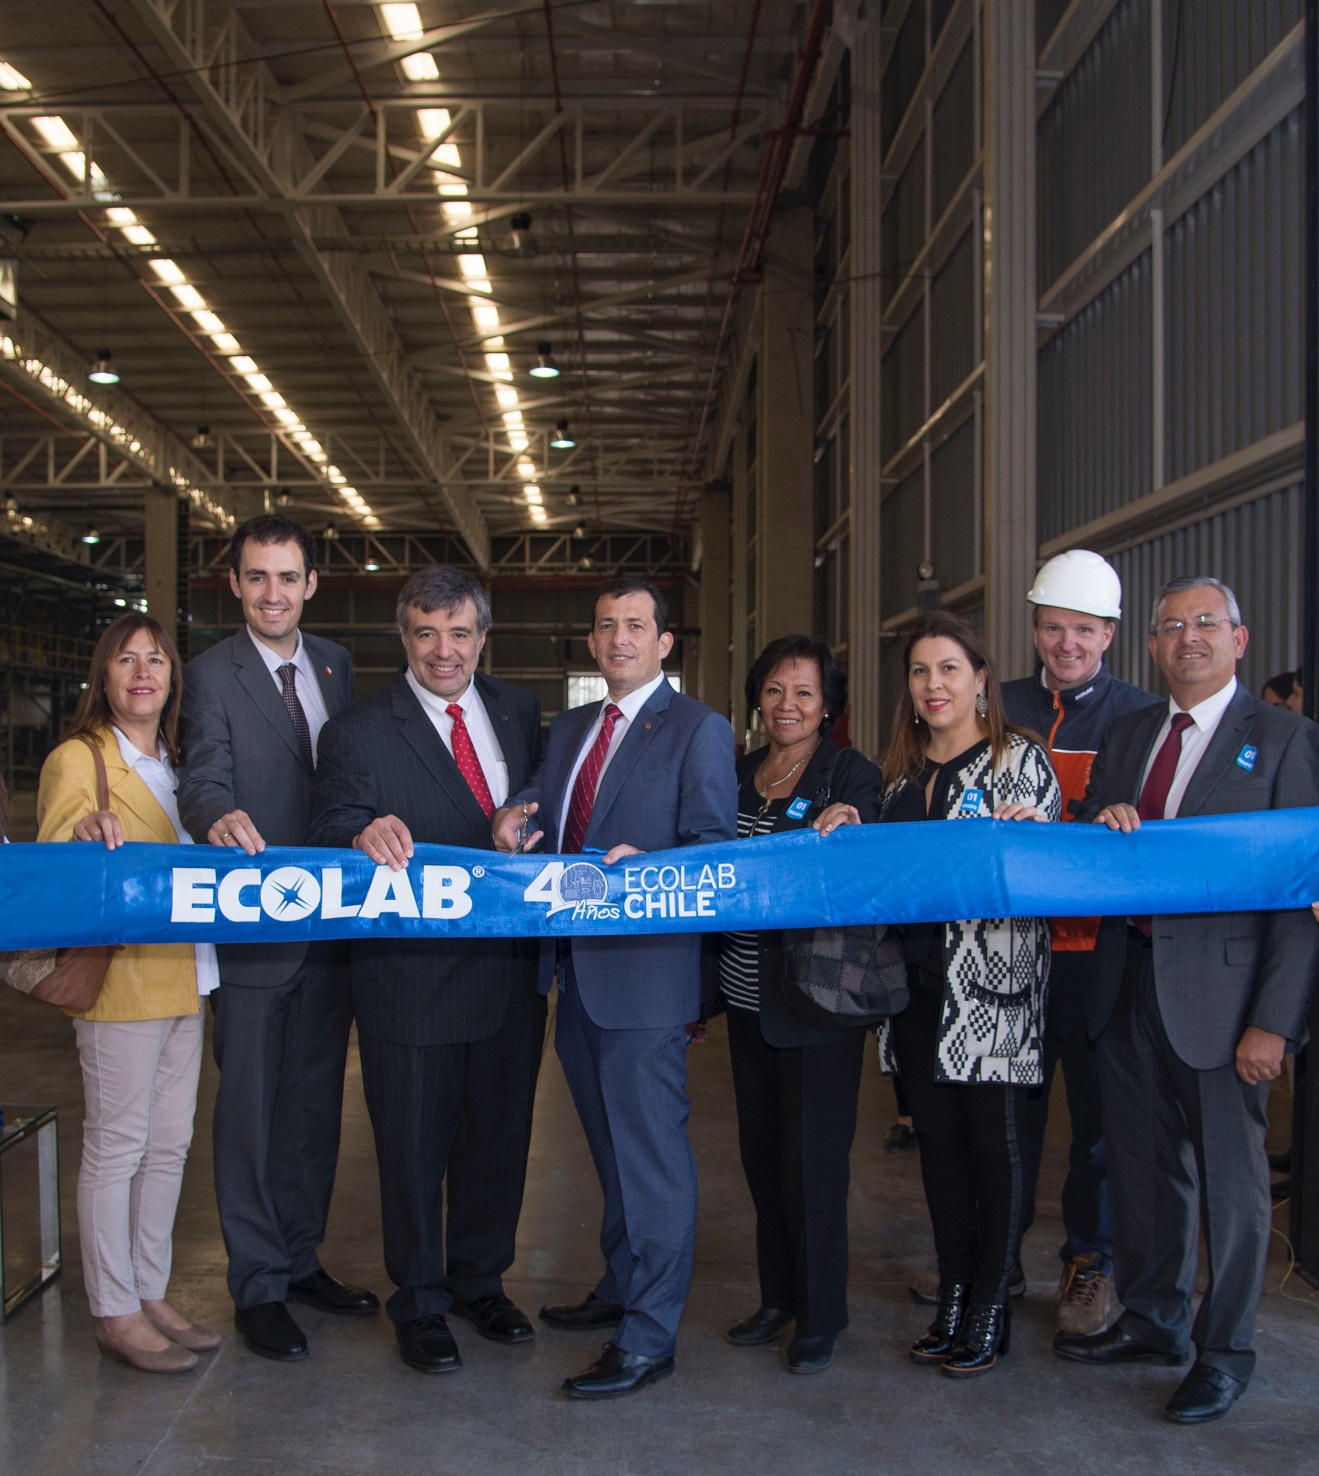 Ecolab aims to triple production in Chile with new plants